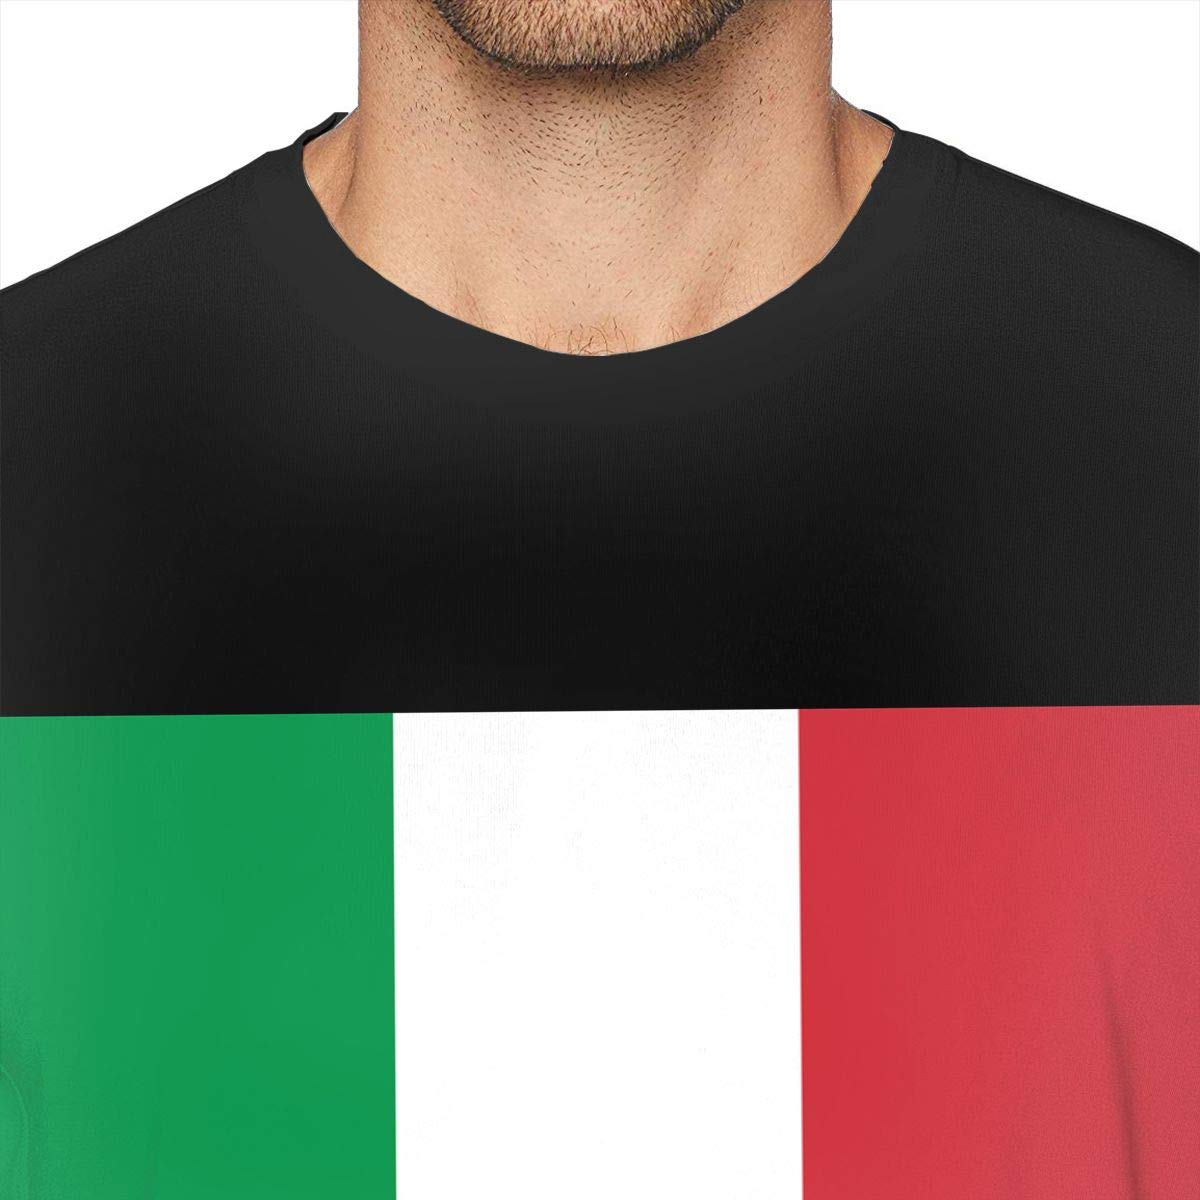 Flag of Italy Novelty T-Shirt Adult Comfortable Short-Sleeve T-Shirts Tee Shirts Size:S-6XL